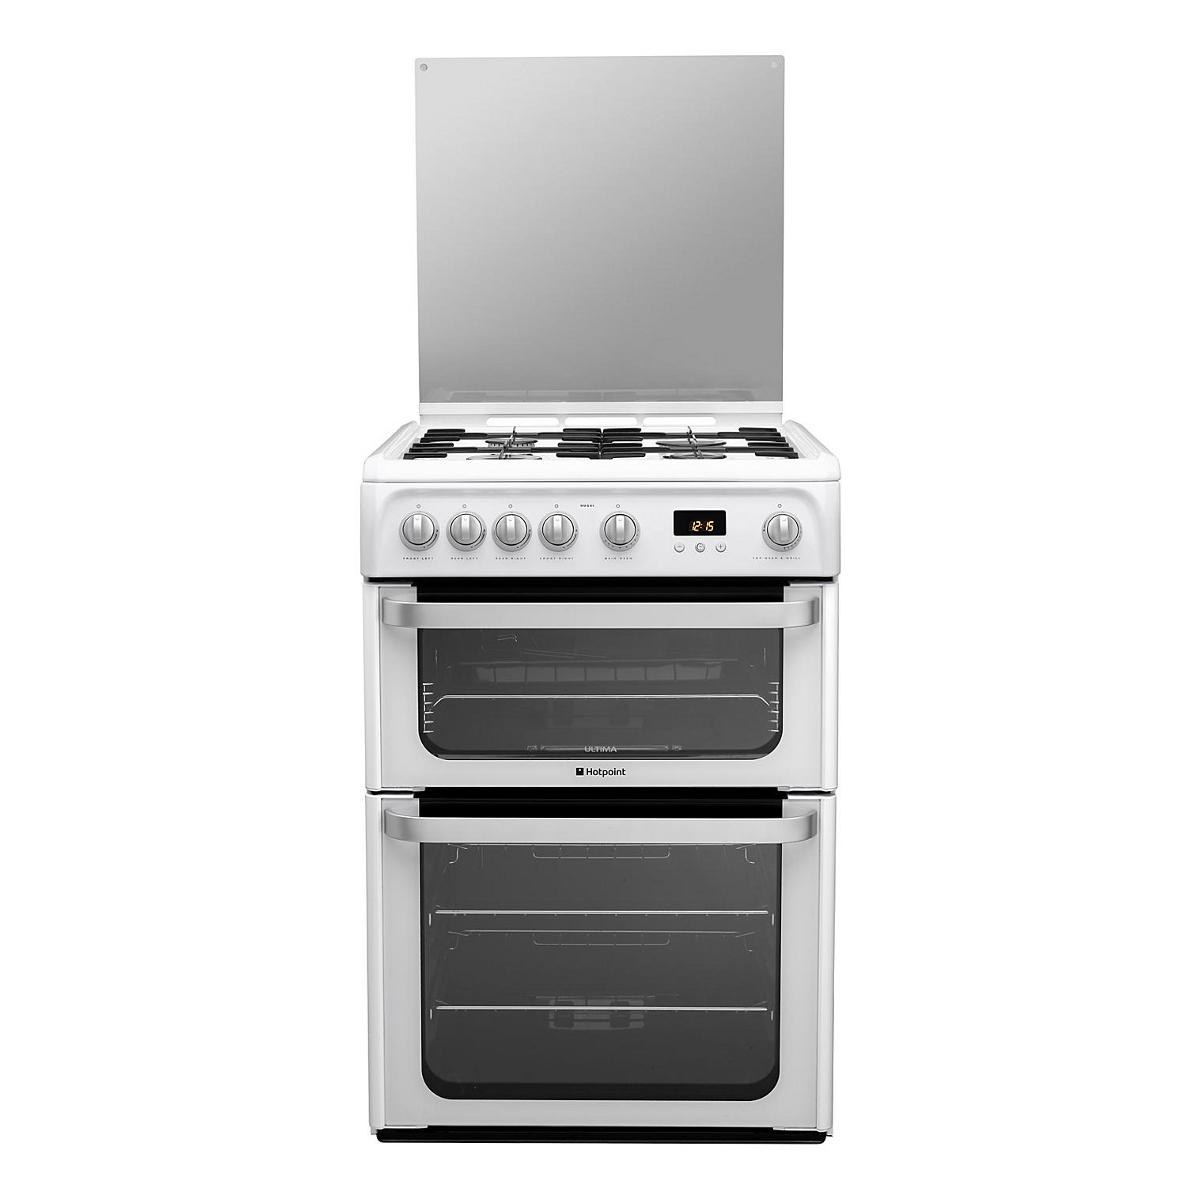 Hotpoint Ultima Hug61p 4 Gas Hob Double Oven Gas Cooker